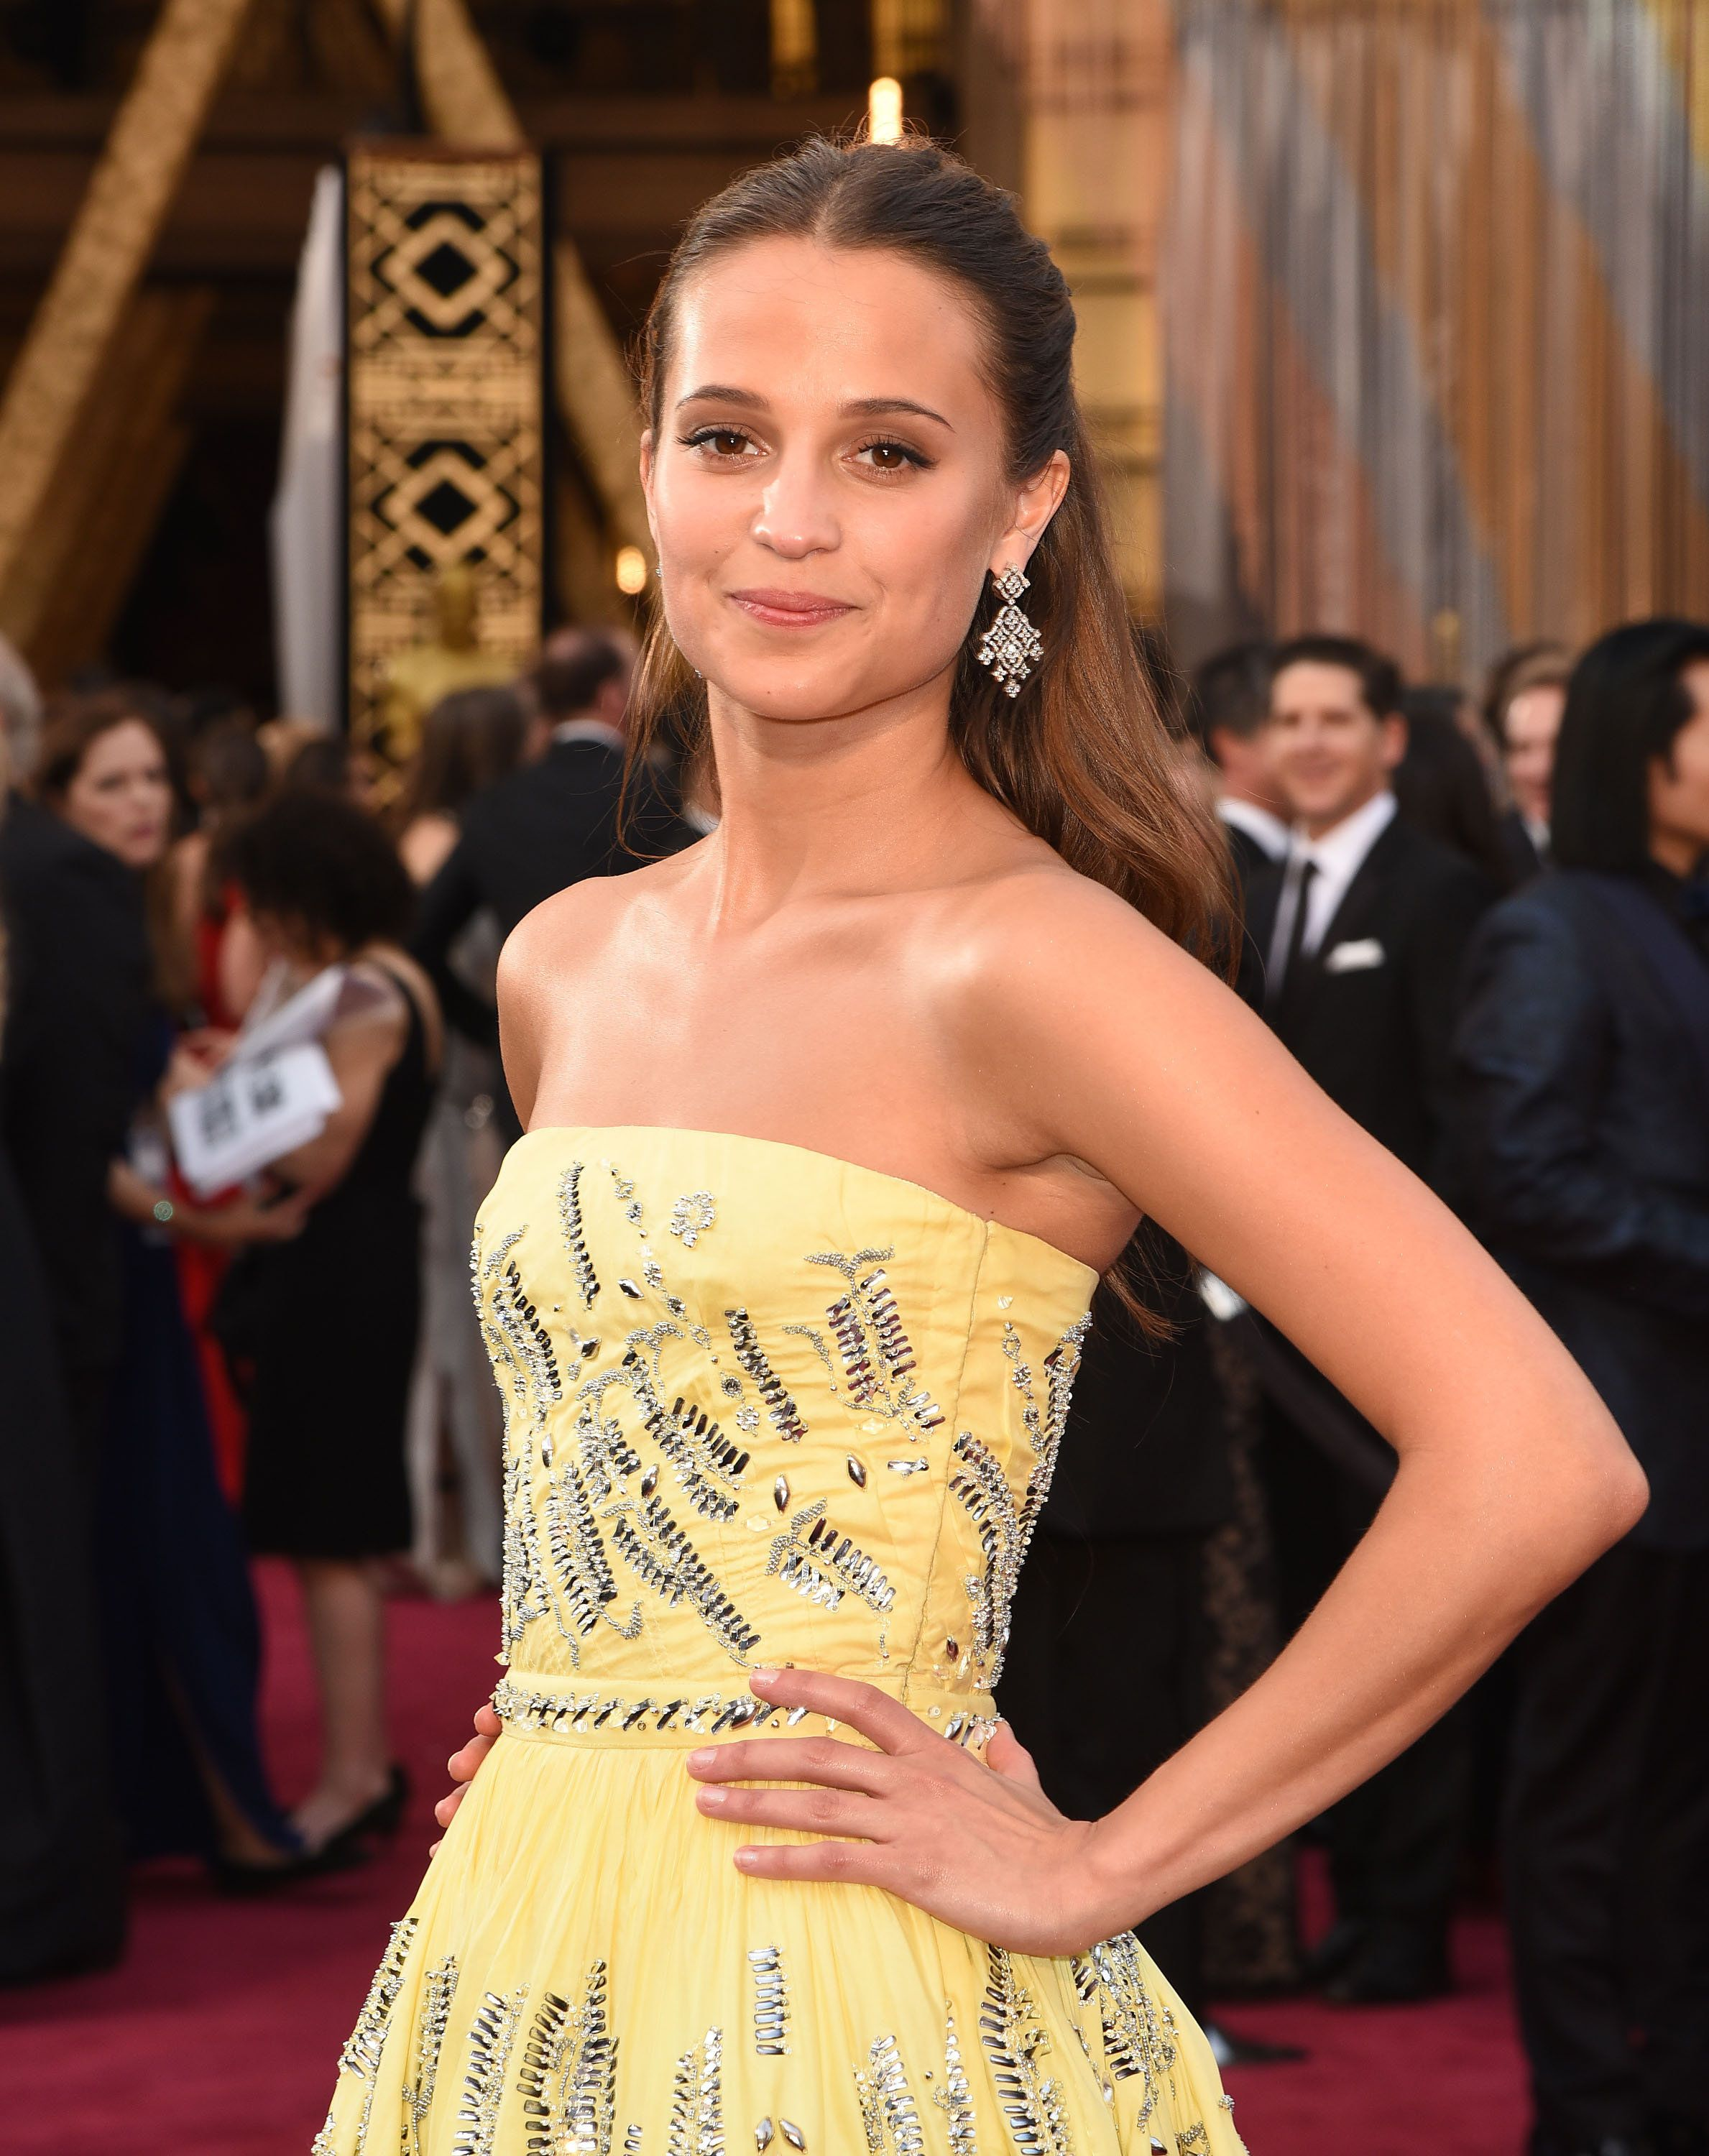 HOLLYWOOD, CA - FEBRUARY 28:  Actress Alicia Vikander attends the 88th Annual Academy Awards at Hollywood & Highland Center on February 28, 2016 in Hollywood, California.  (Photo by C Flanigan/FilmMagic)